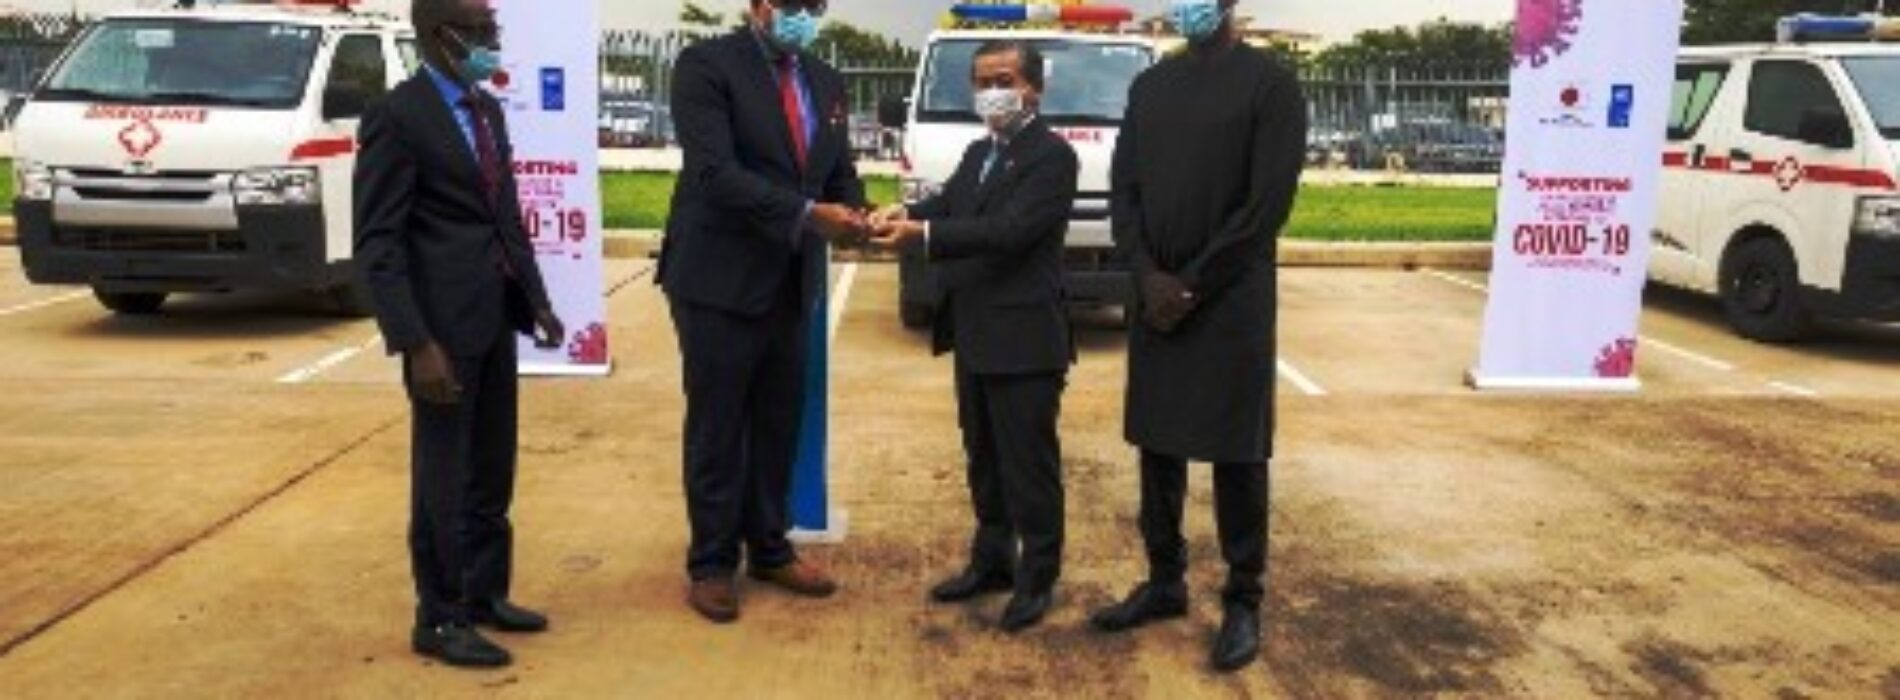 UNDP, Japan assist NCDC with ambulances to fight COVID-19